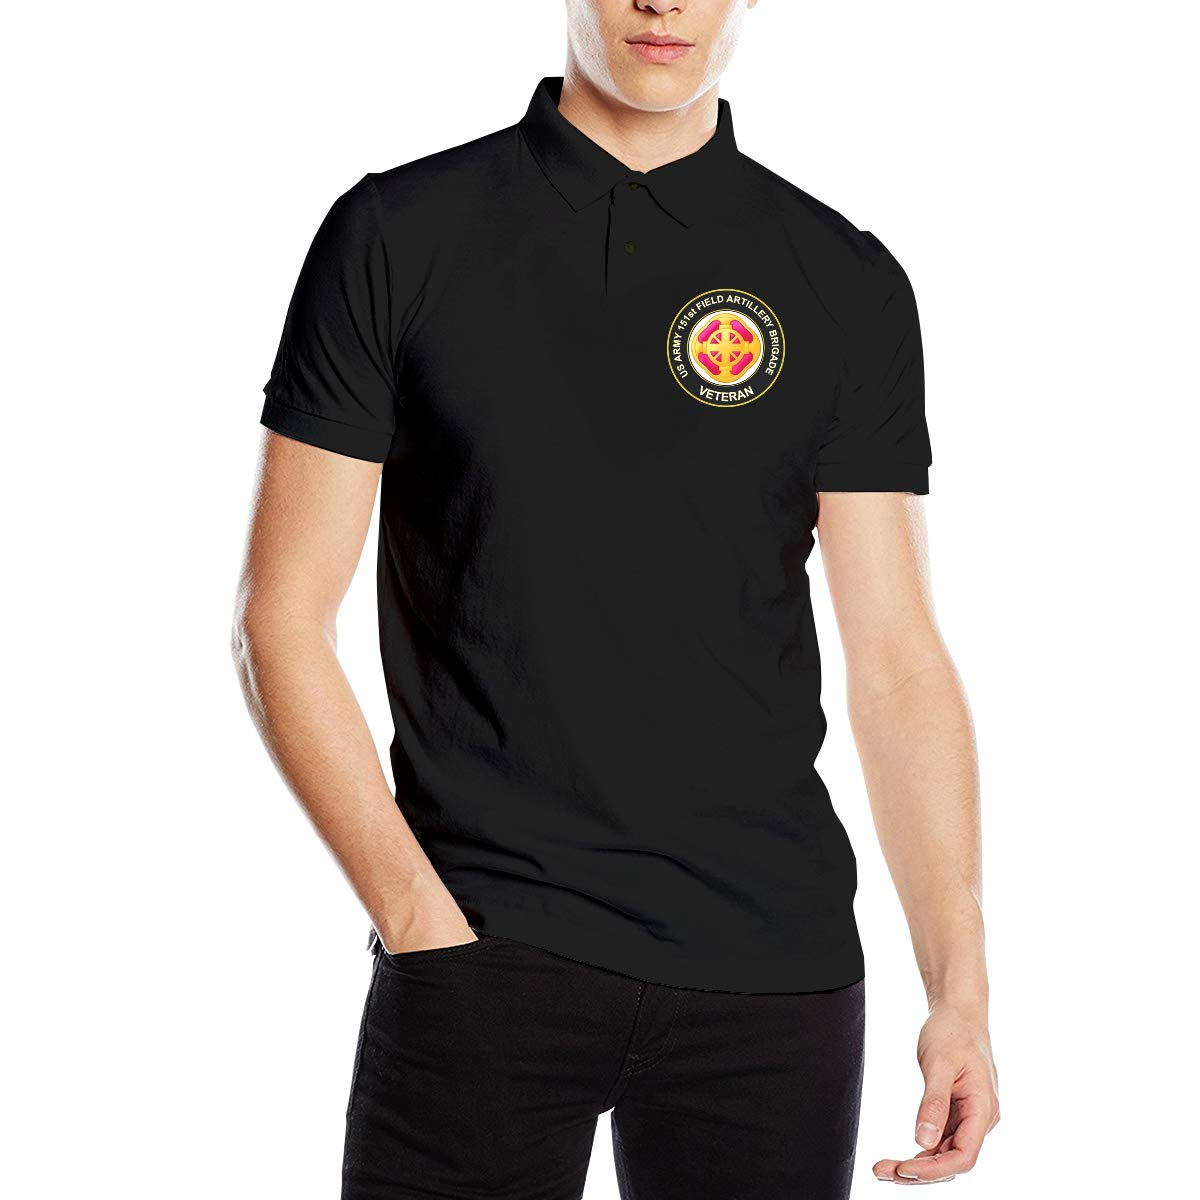 Army 151st Field Artillery Brigade Veteran Mens Regular-Fit Cotton Polo Shirt Short Sleeve You Know And Good U.S